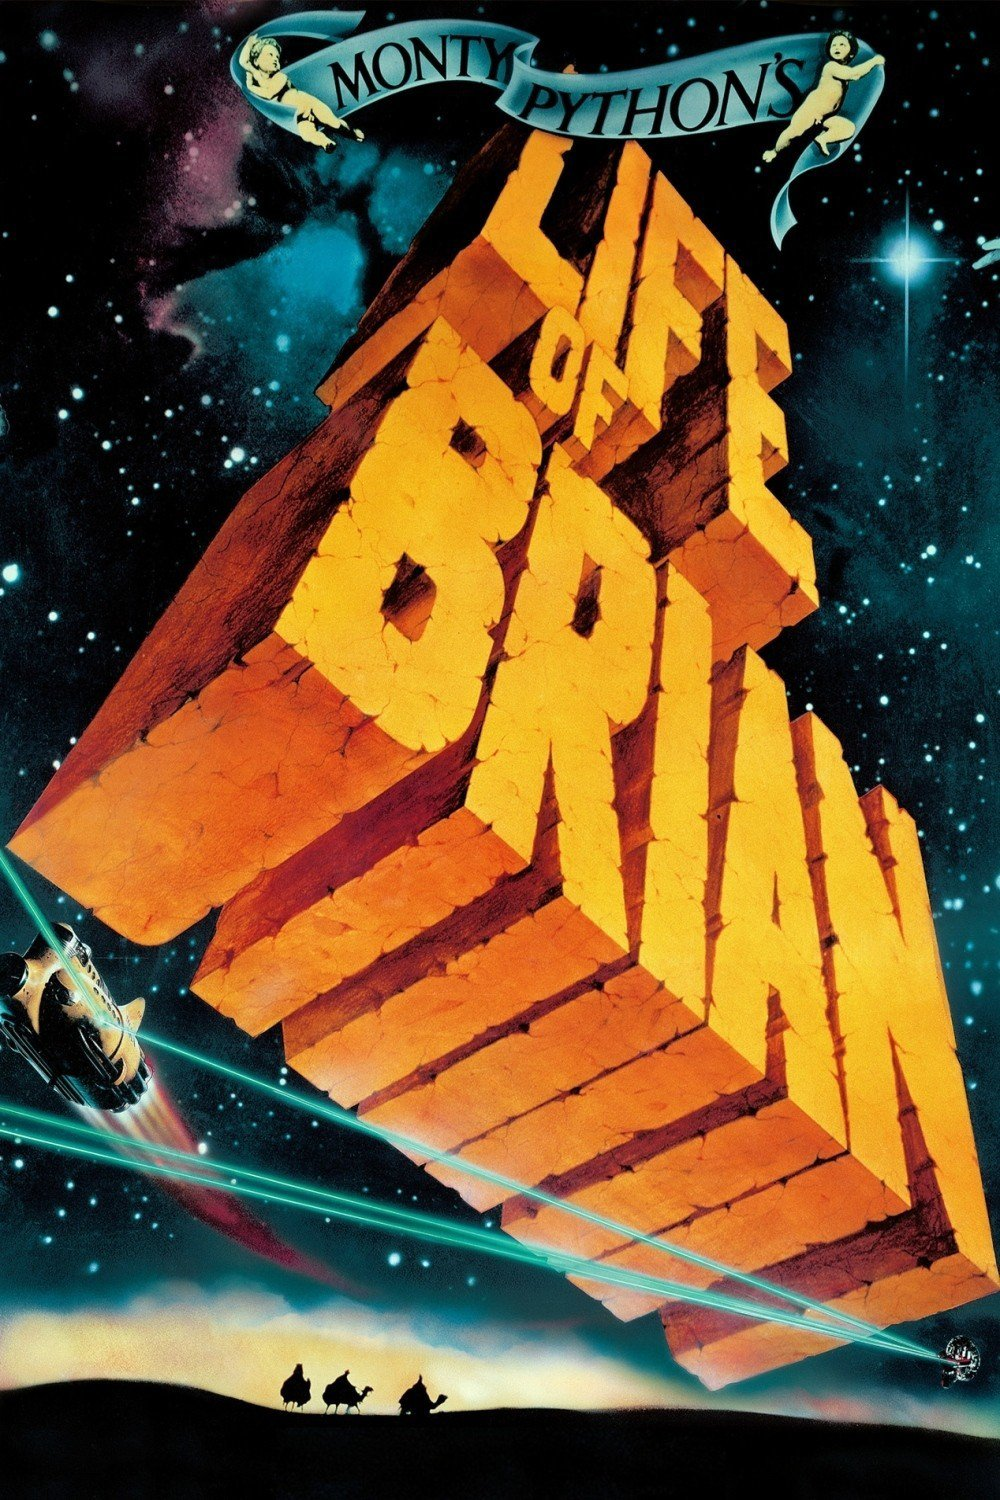 Poster for Monty Python's The Life of Brian